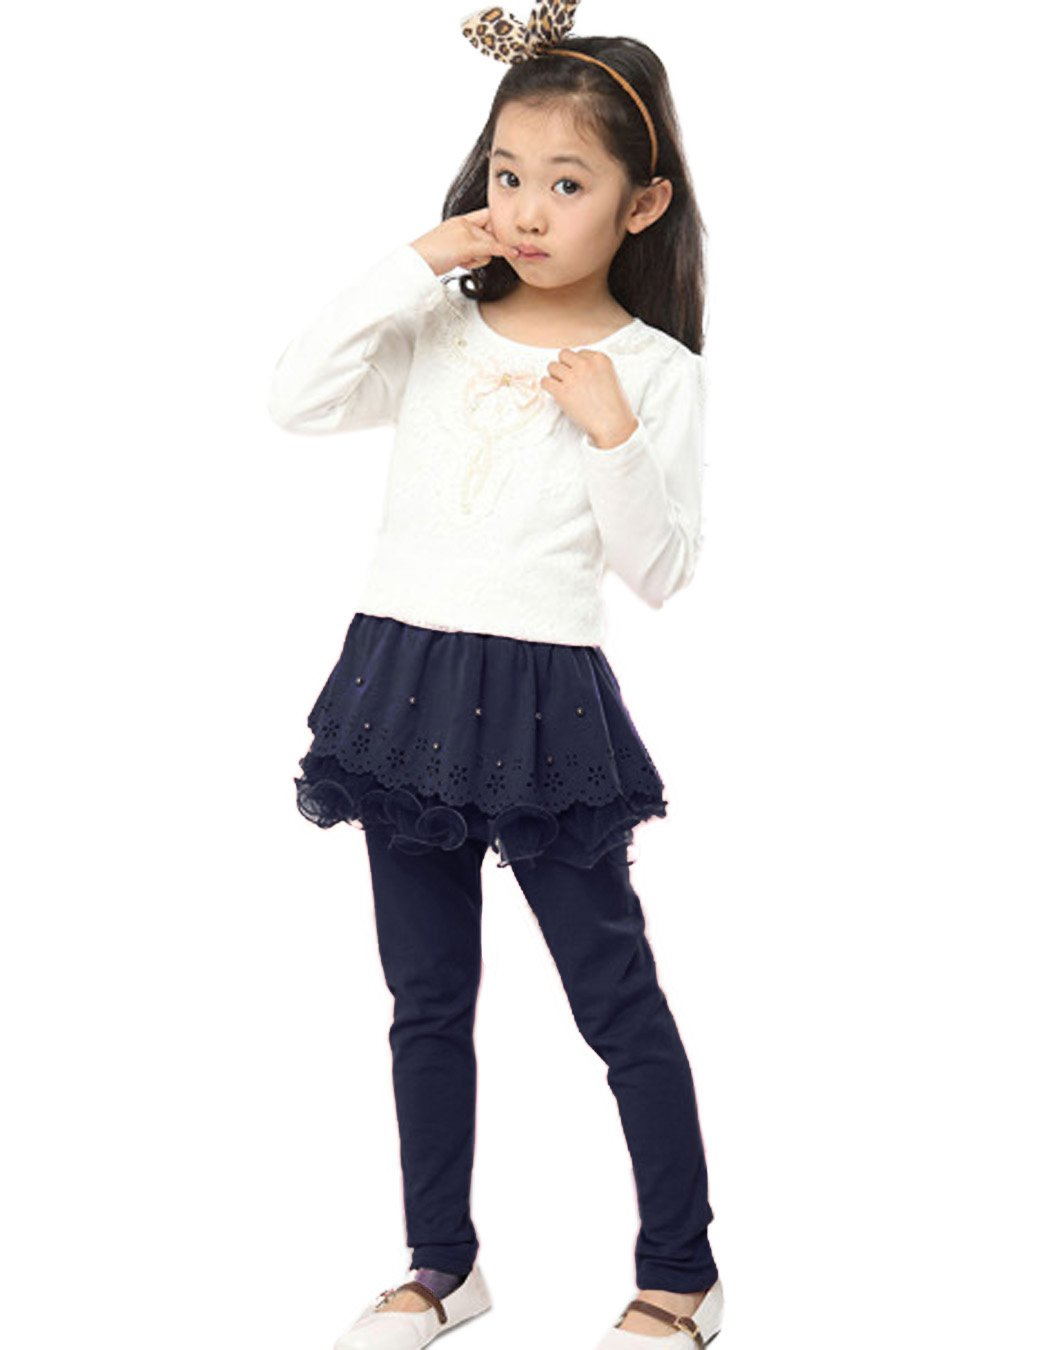 Arshiner Girls Warm Tutu Leggings in Cotton for School Play by Arshiner (Image #4)